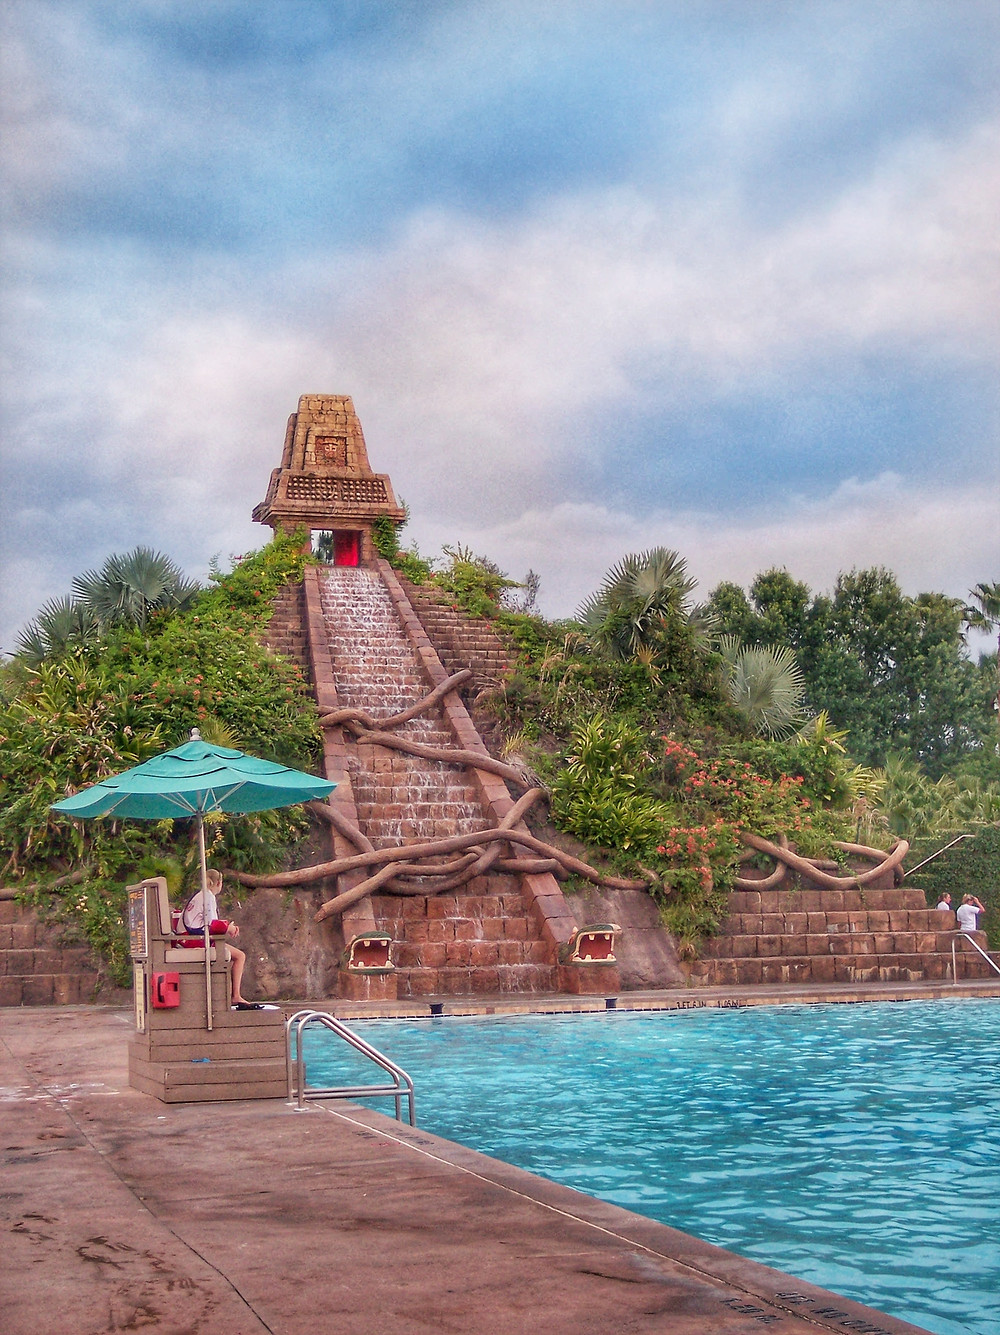 Lost City of Cibola Pool featuring Mayan Pyramid at Disney's Coronado Springs Resort